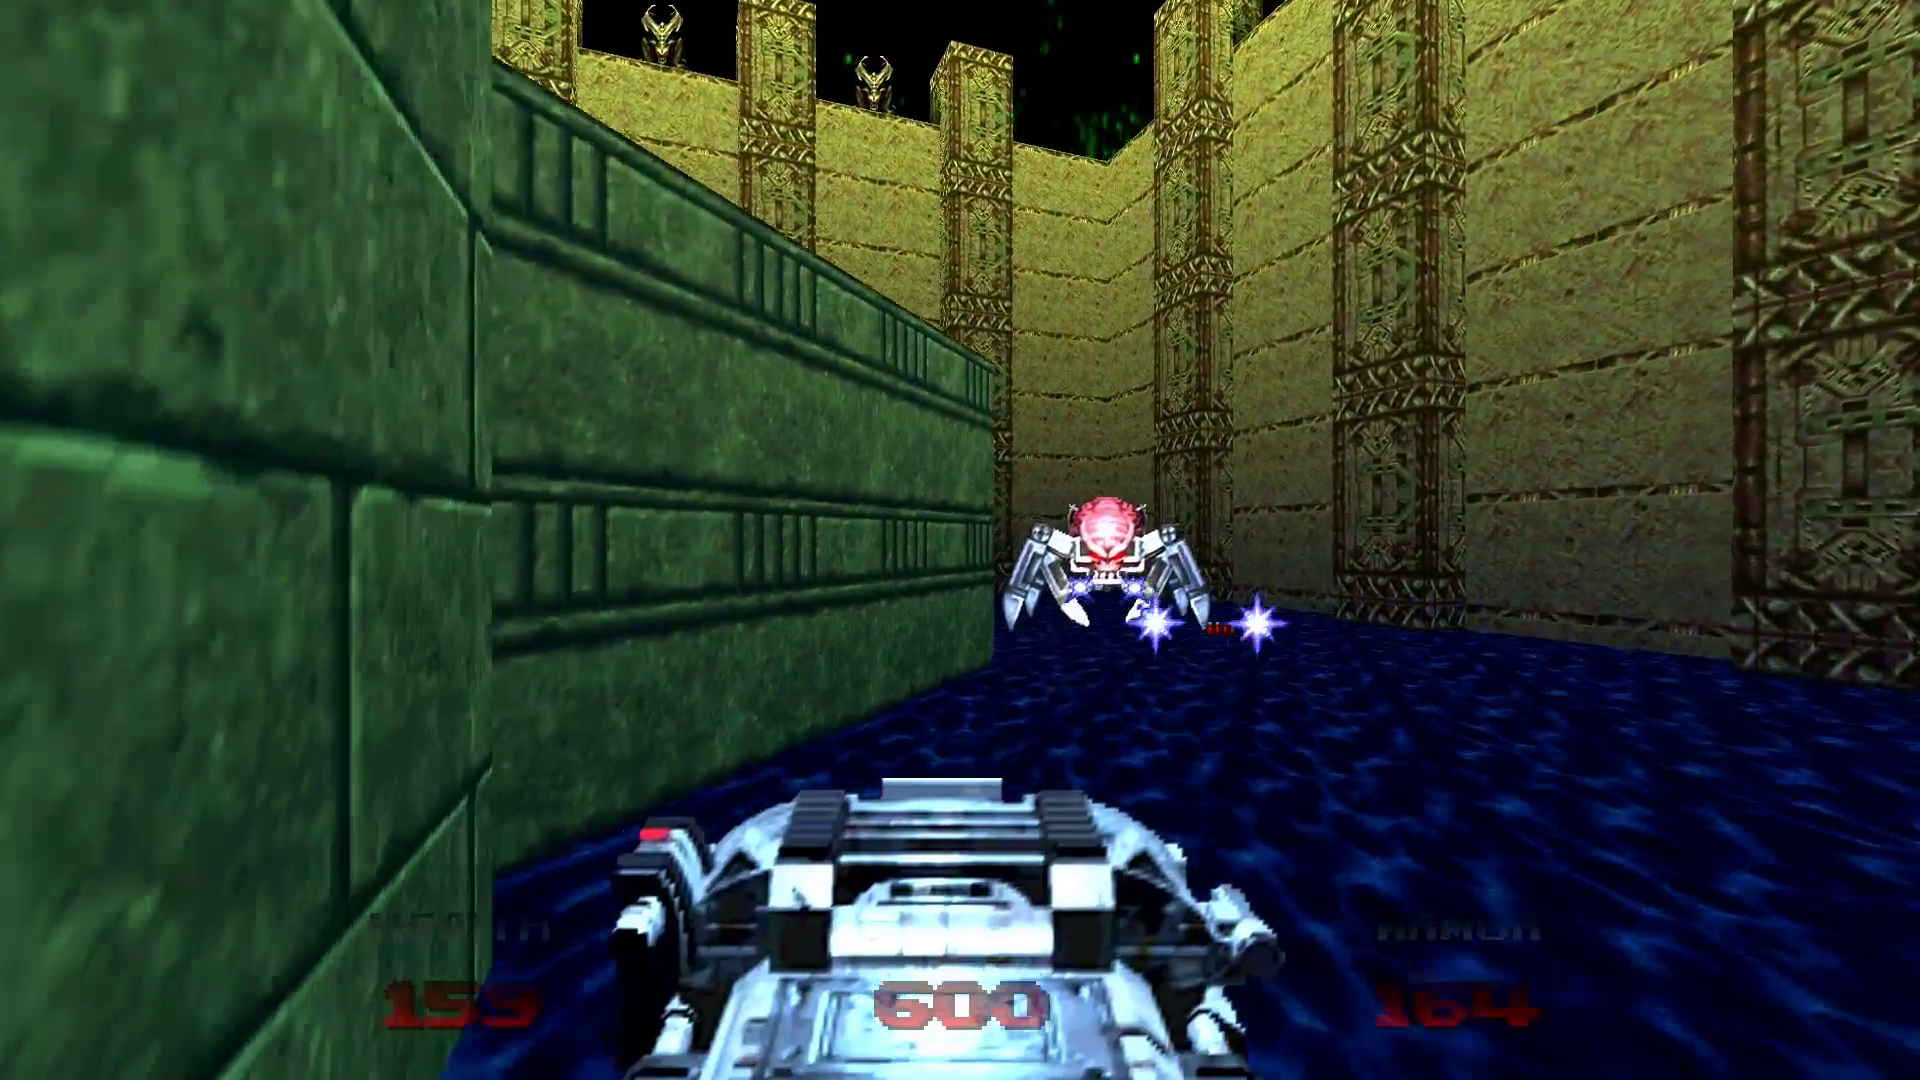 Doom 64 confirmed for the Nintendo Switch, launches this November